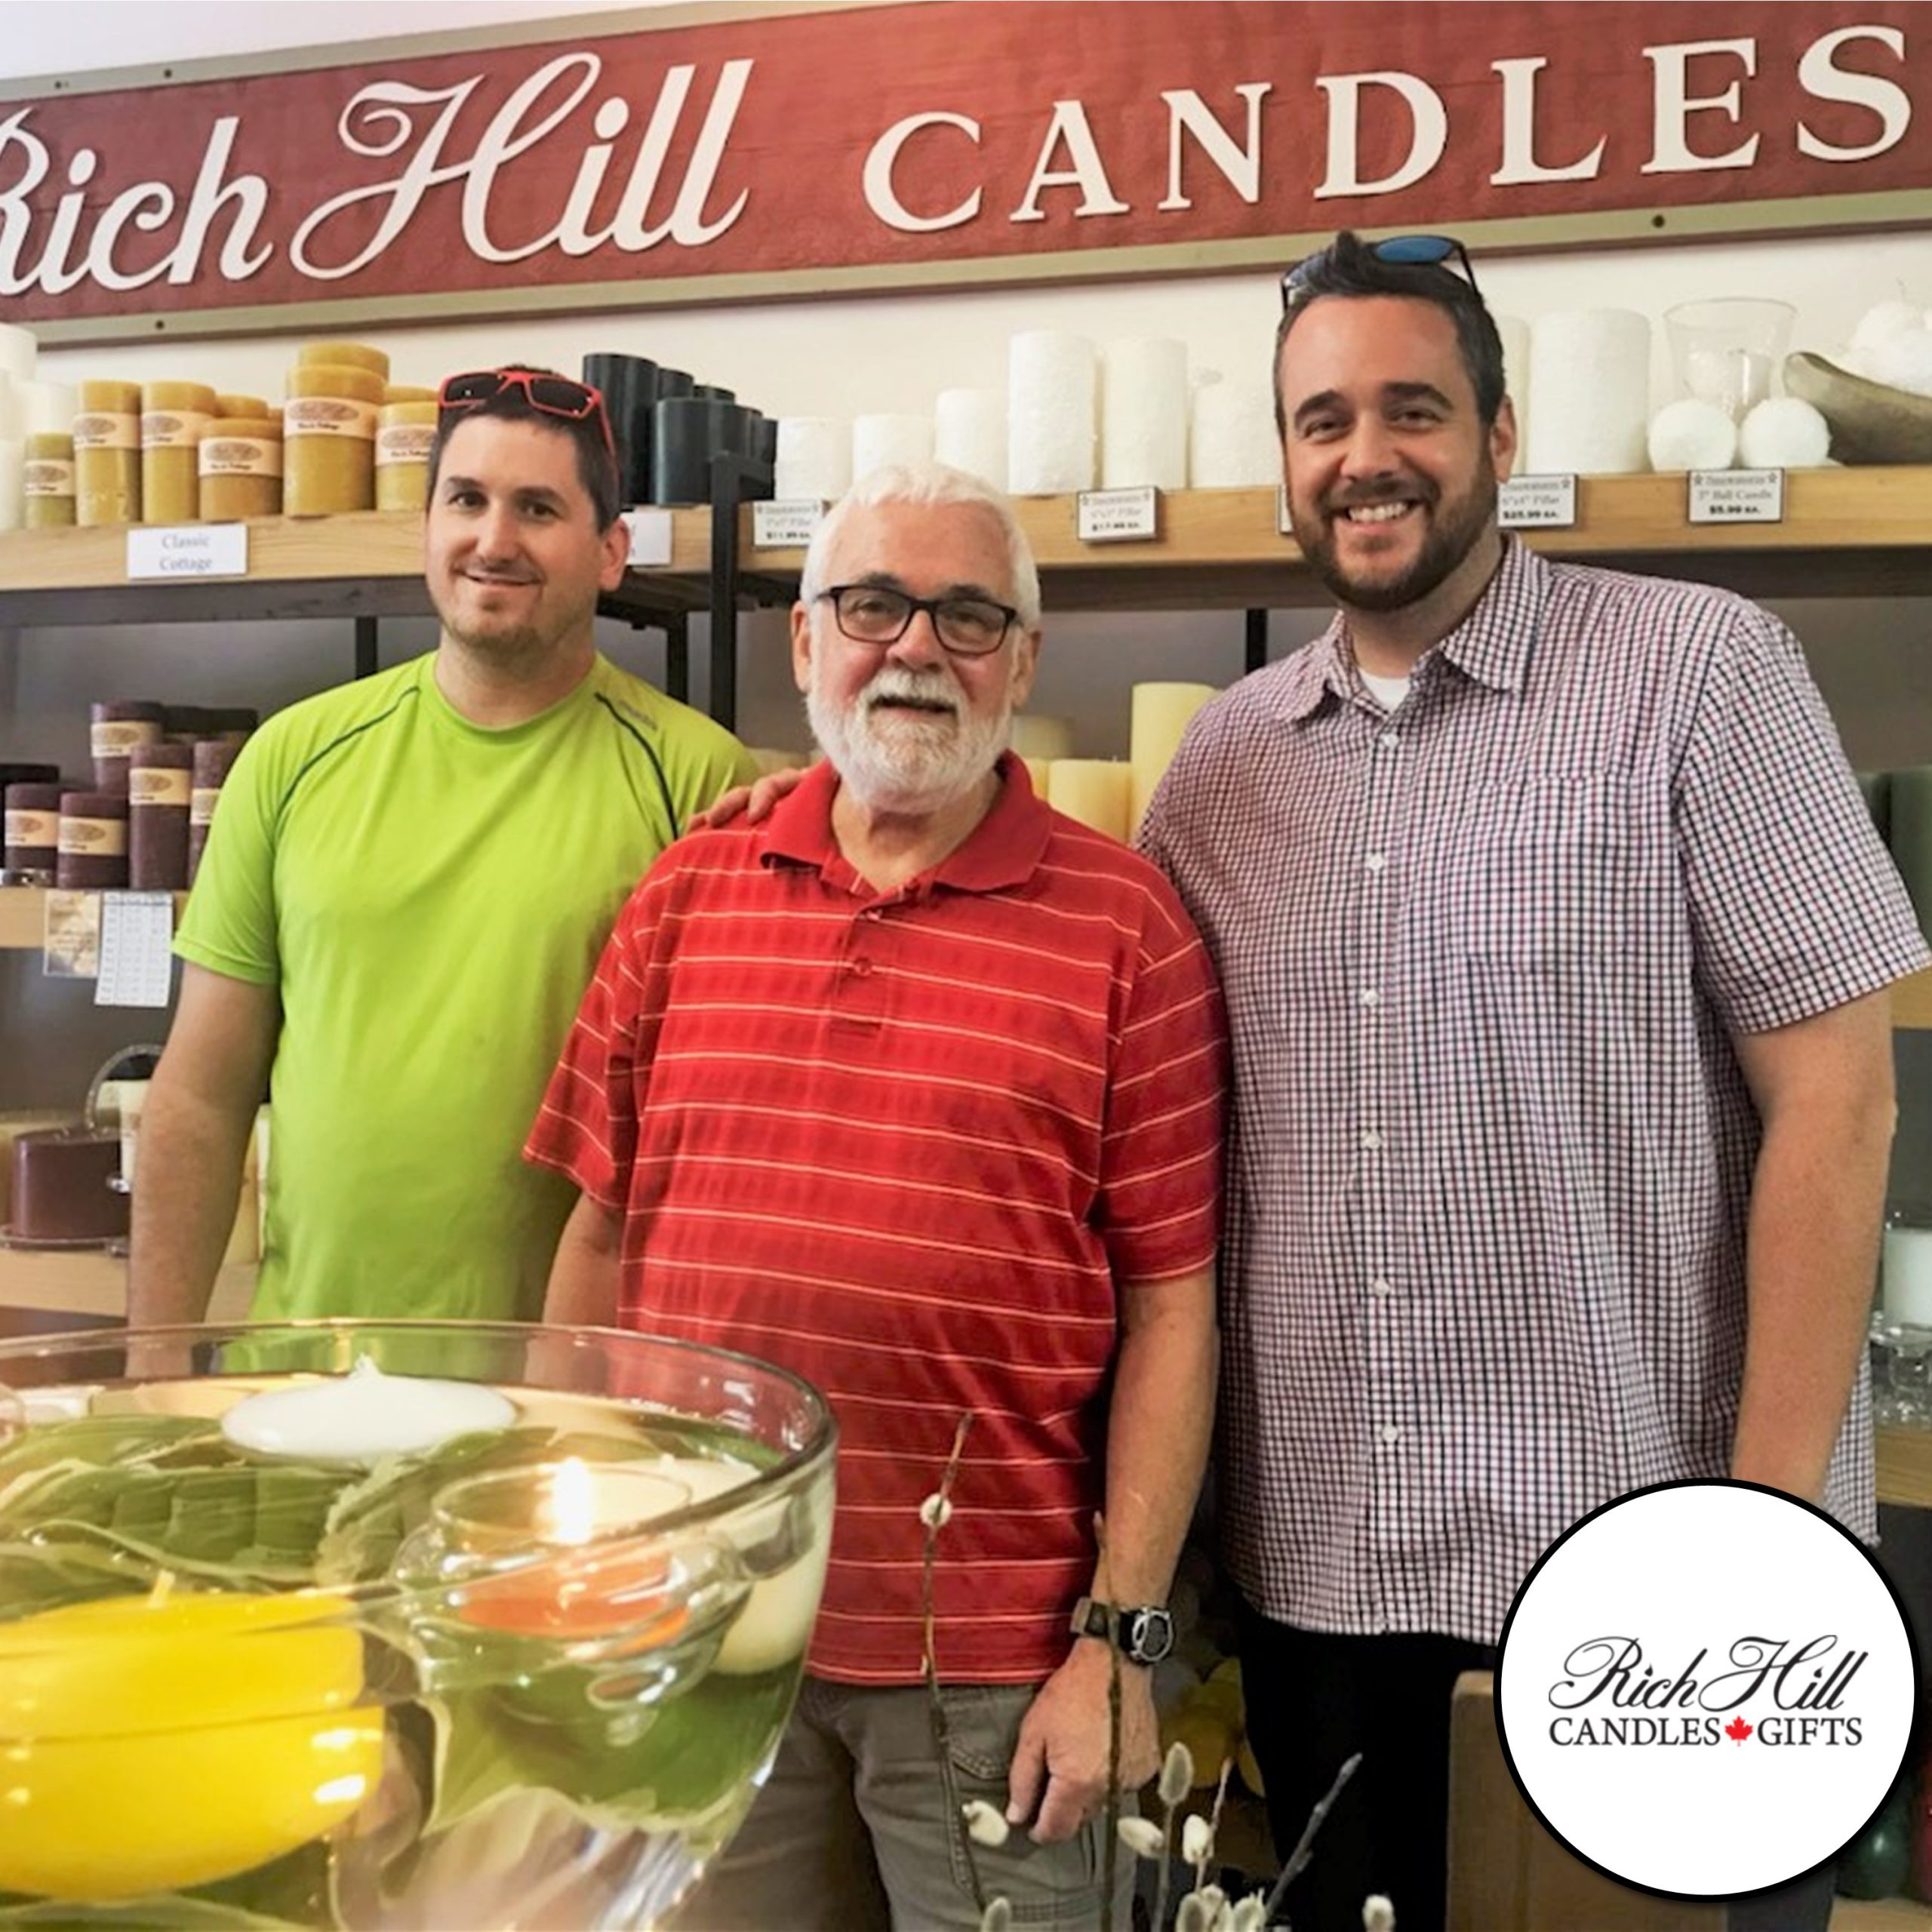 #MBWShoutOuts Week 28: Rich Hill Candles in Bracebridge